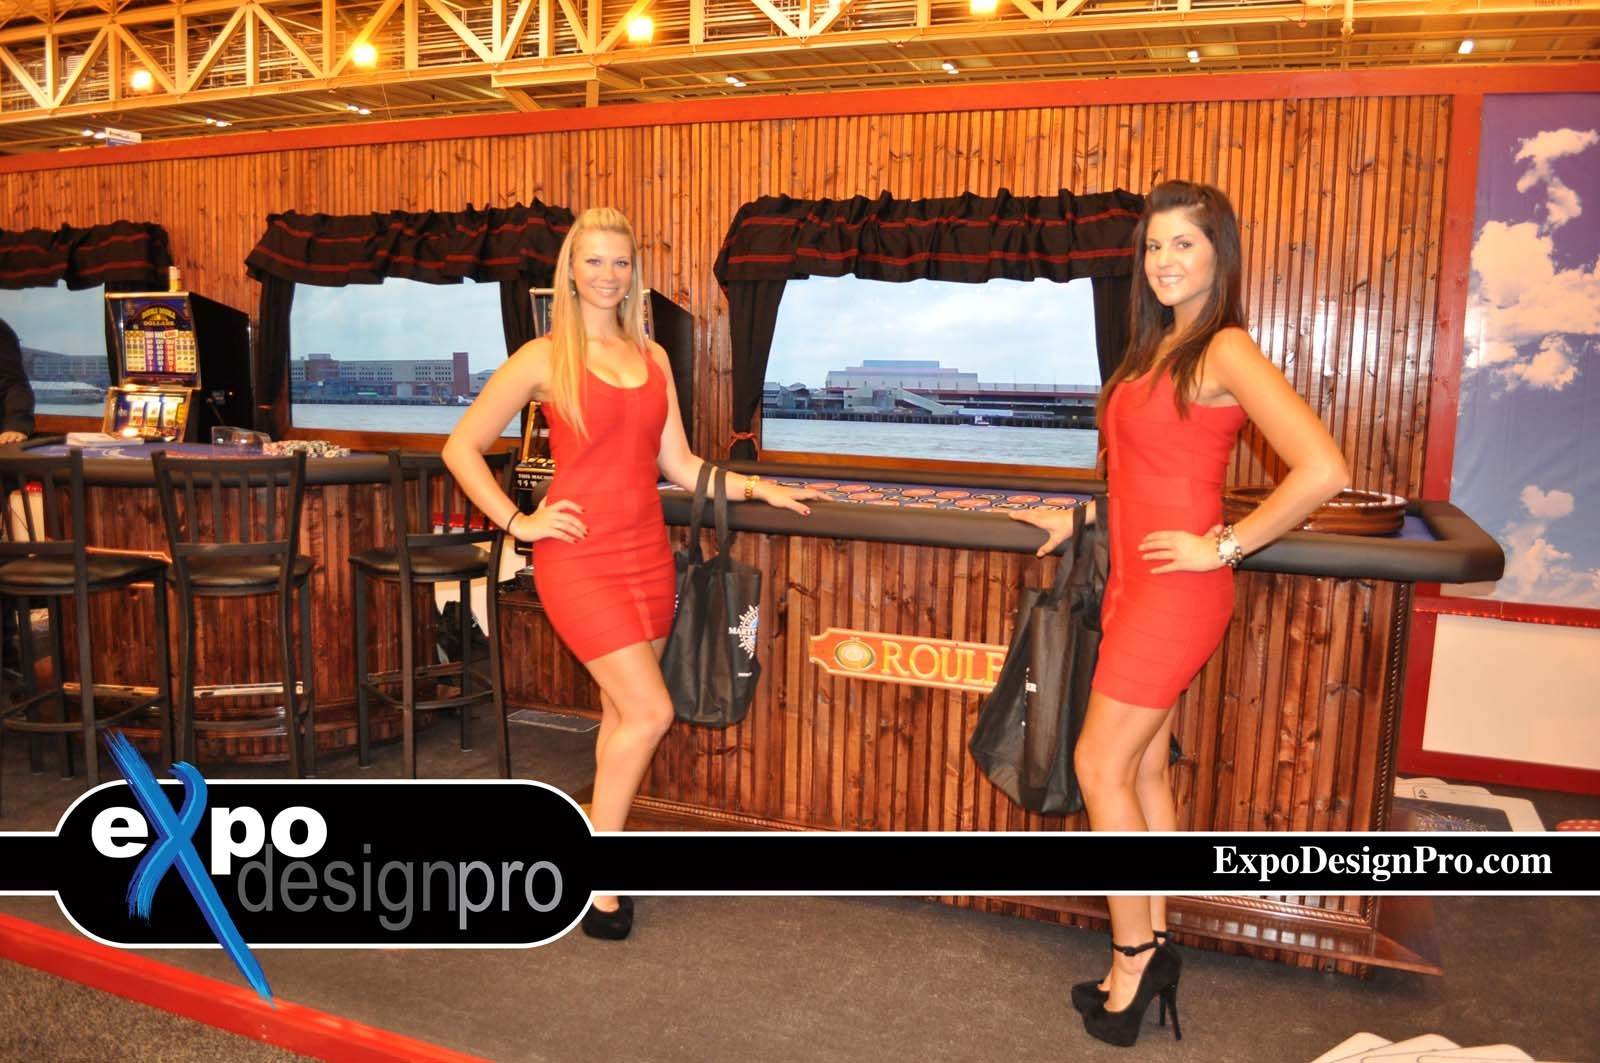 Do you need a river boat casino or casino theme for your next trade show booth? We can help.